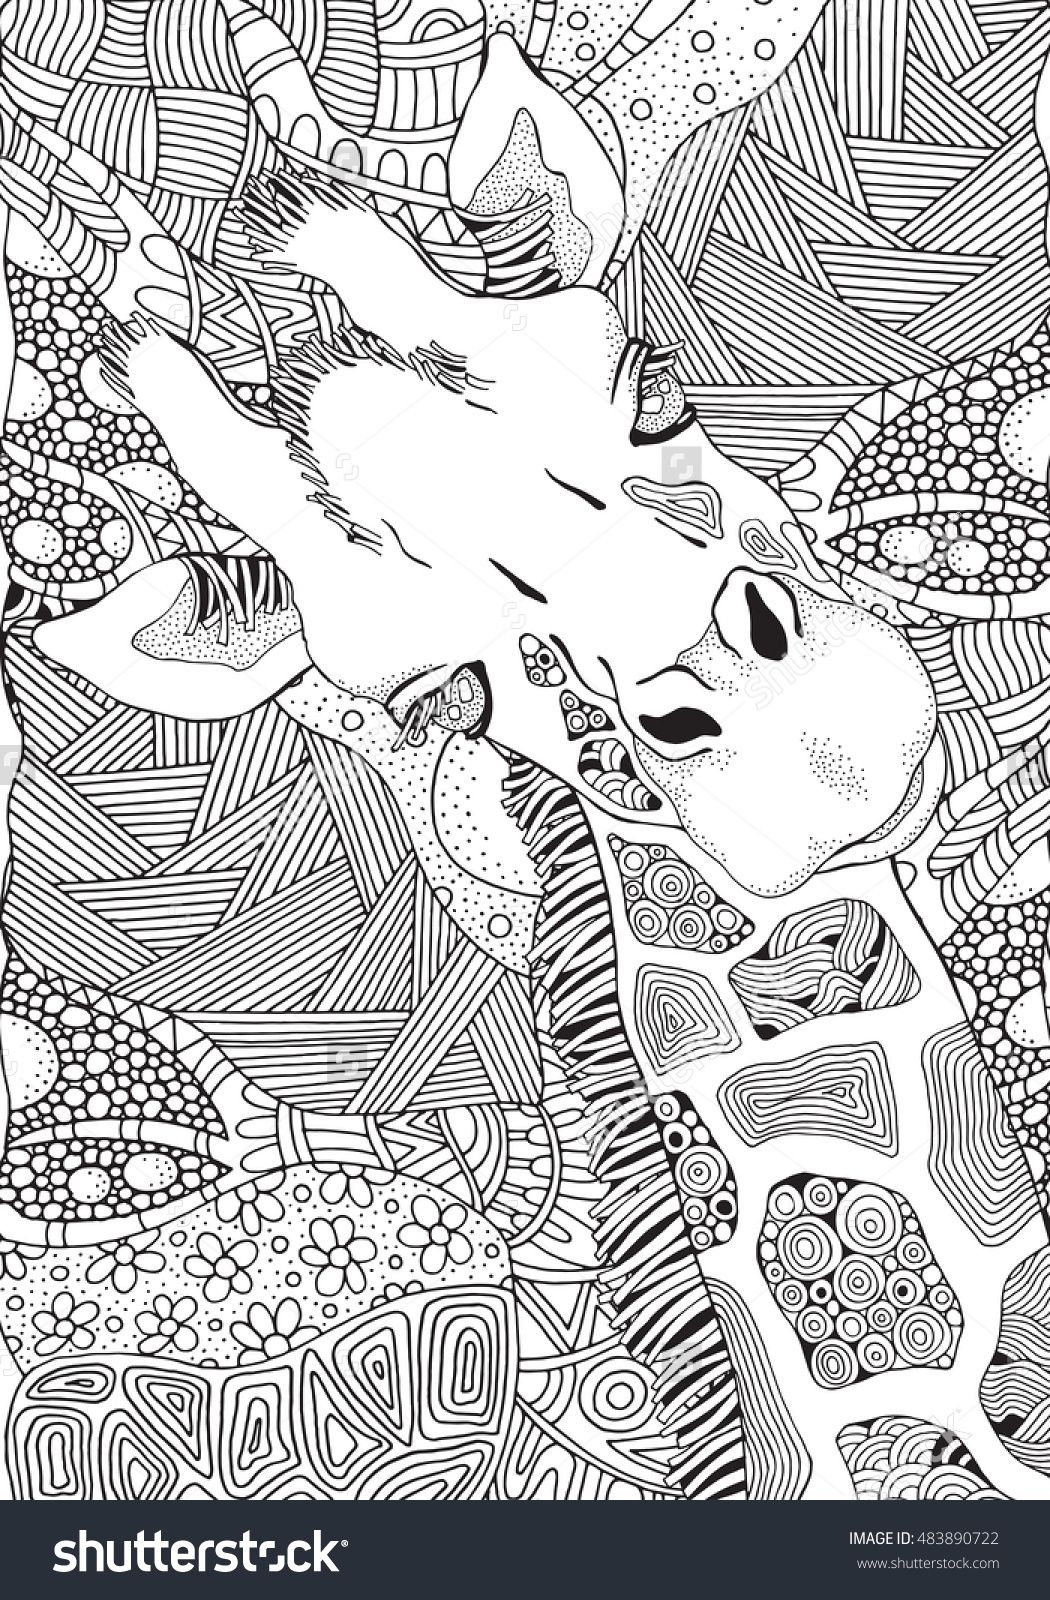 Coloring book page for adult and children giraffe in zentangle